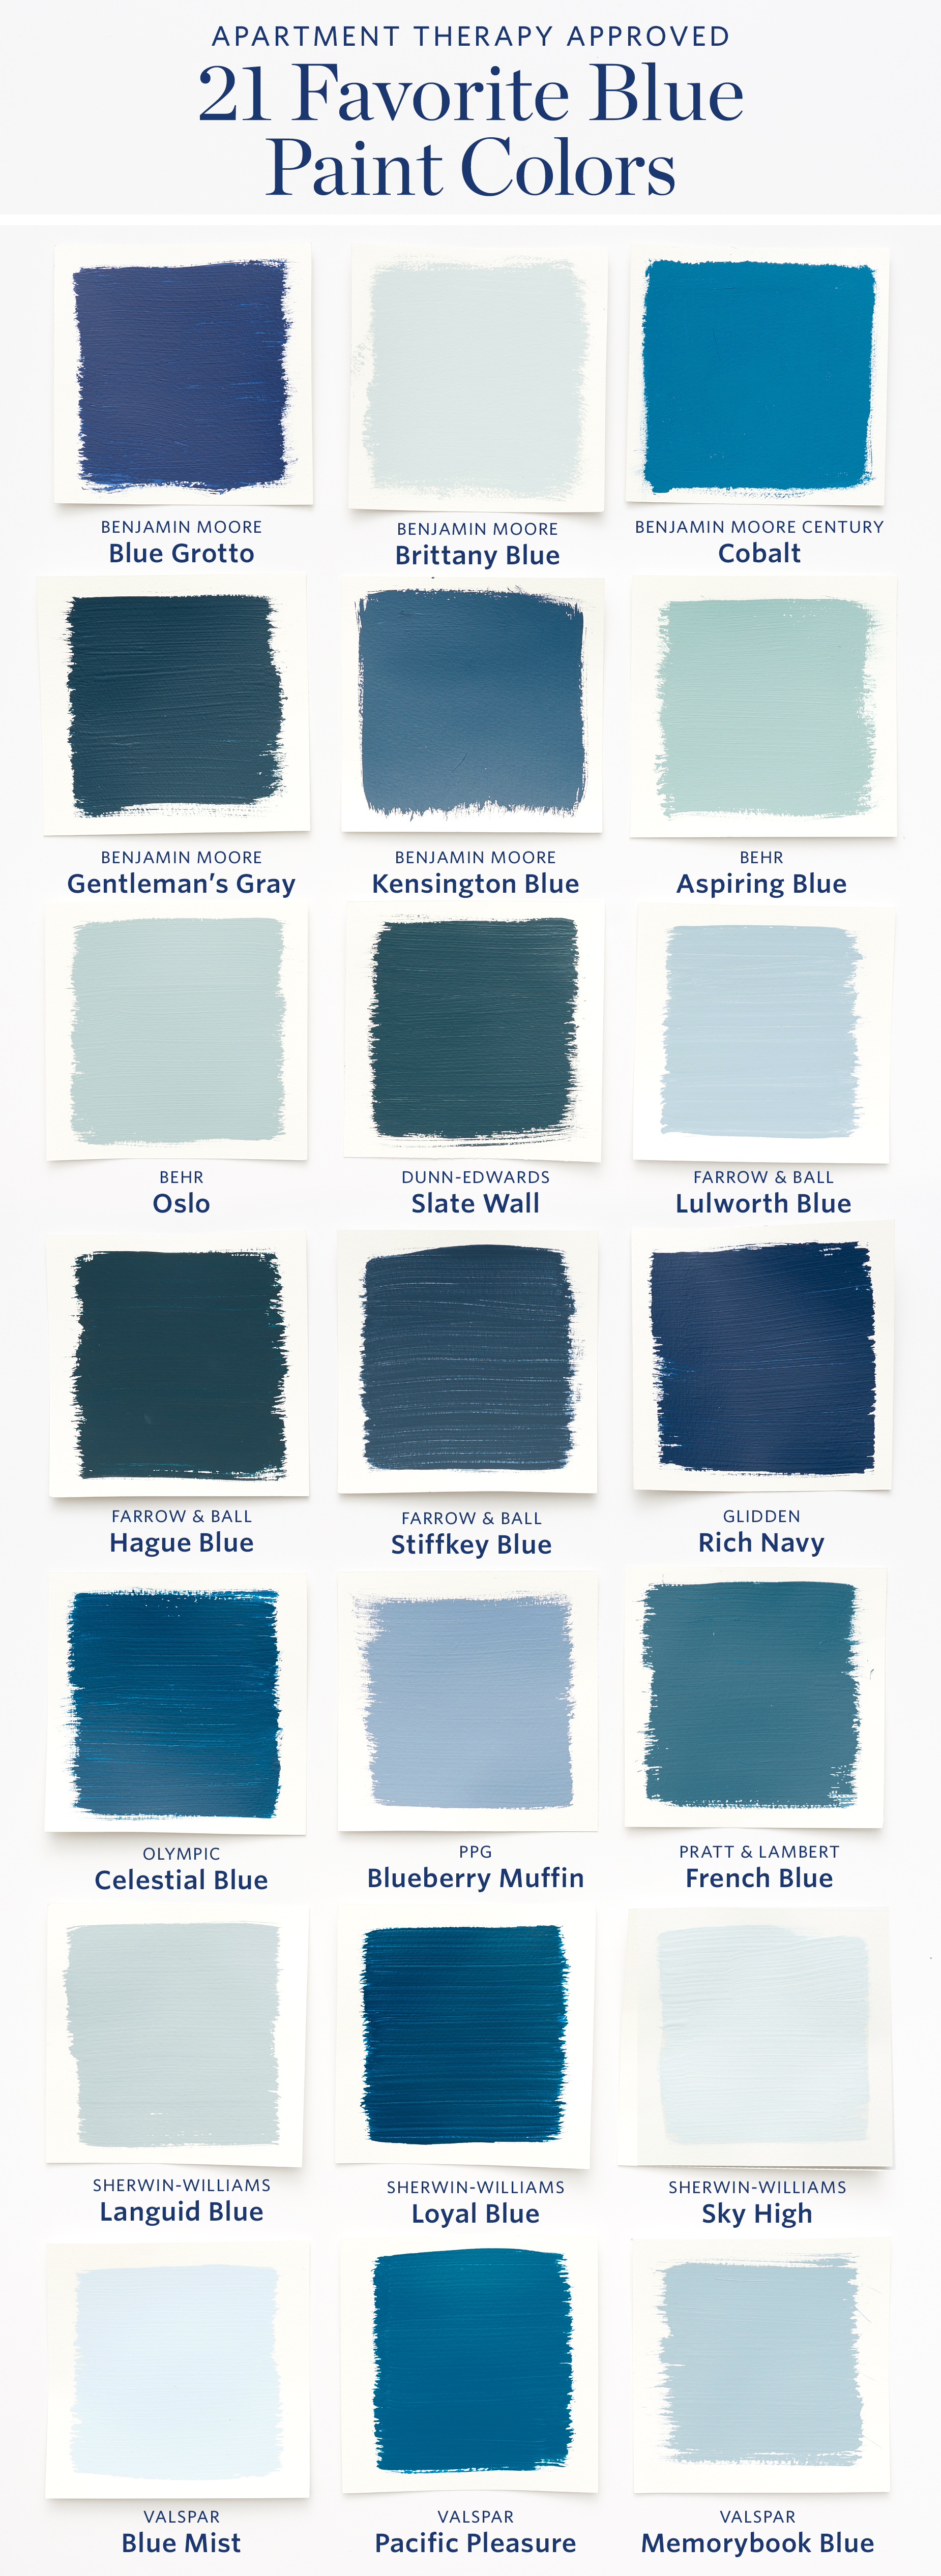 21 Best Blue Paint Colors For Interior Walls Apartment Therapy